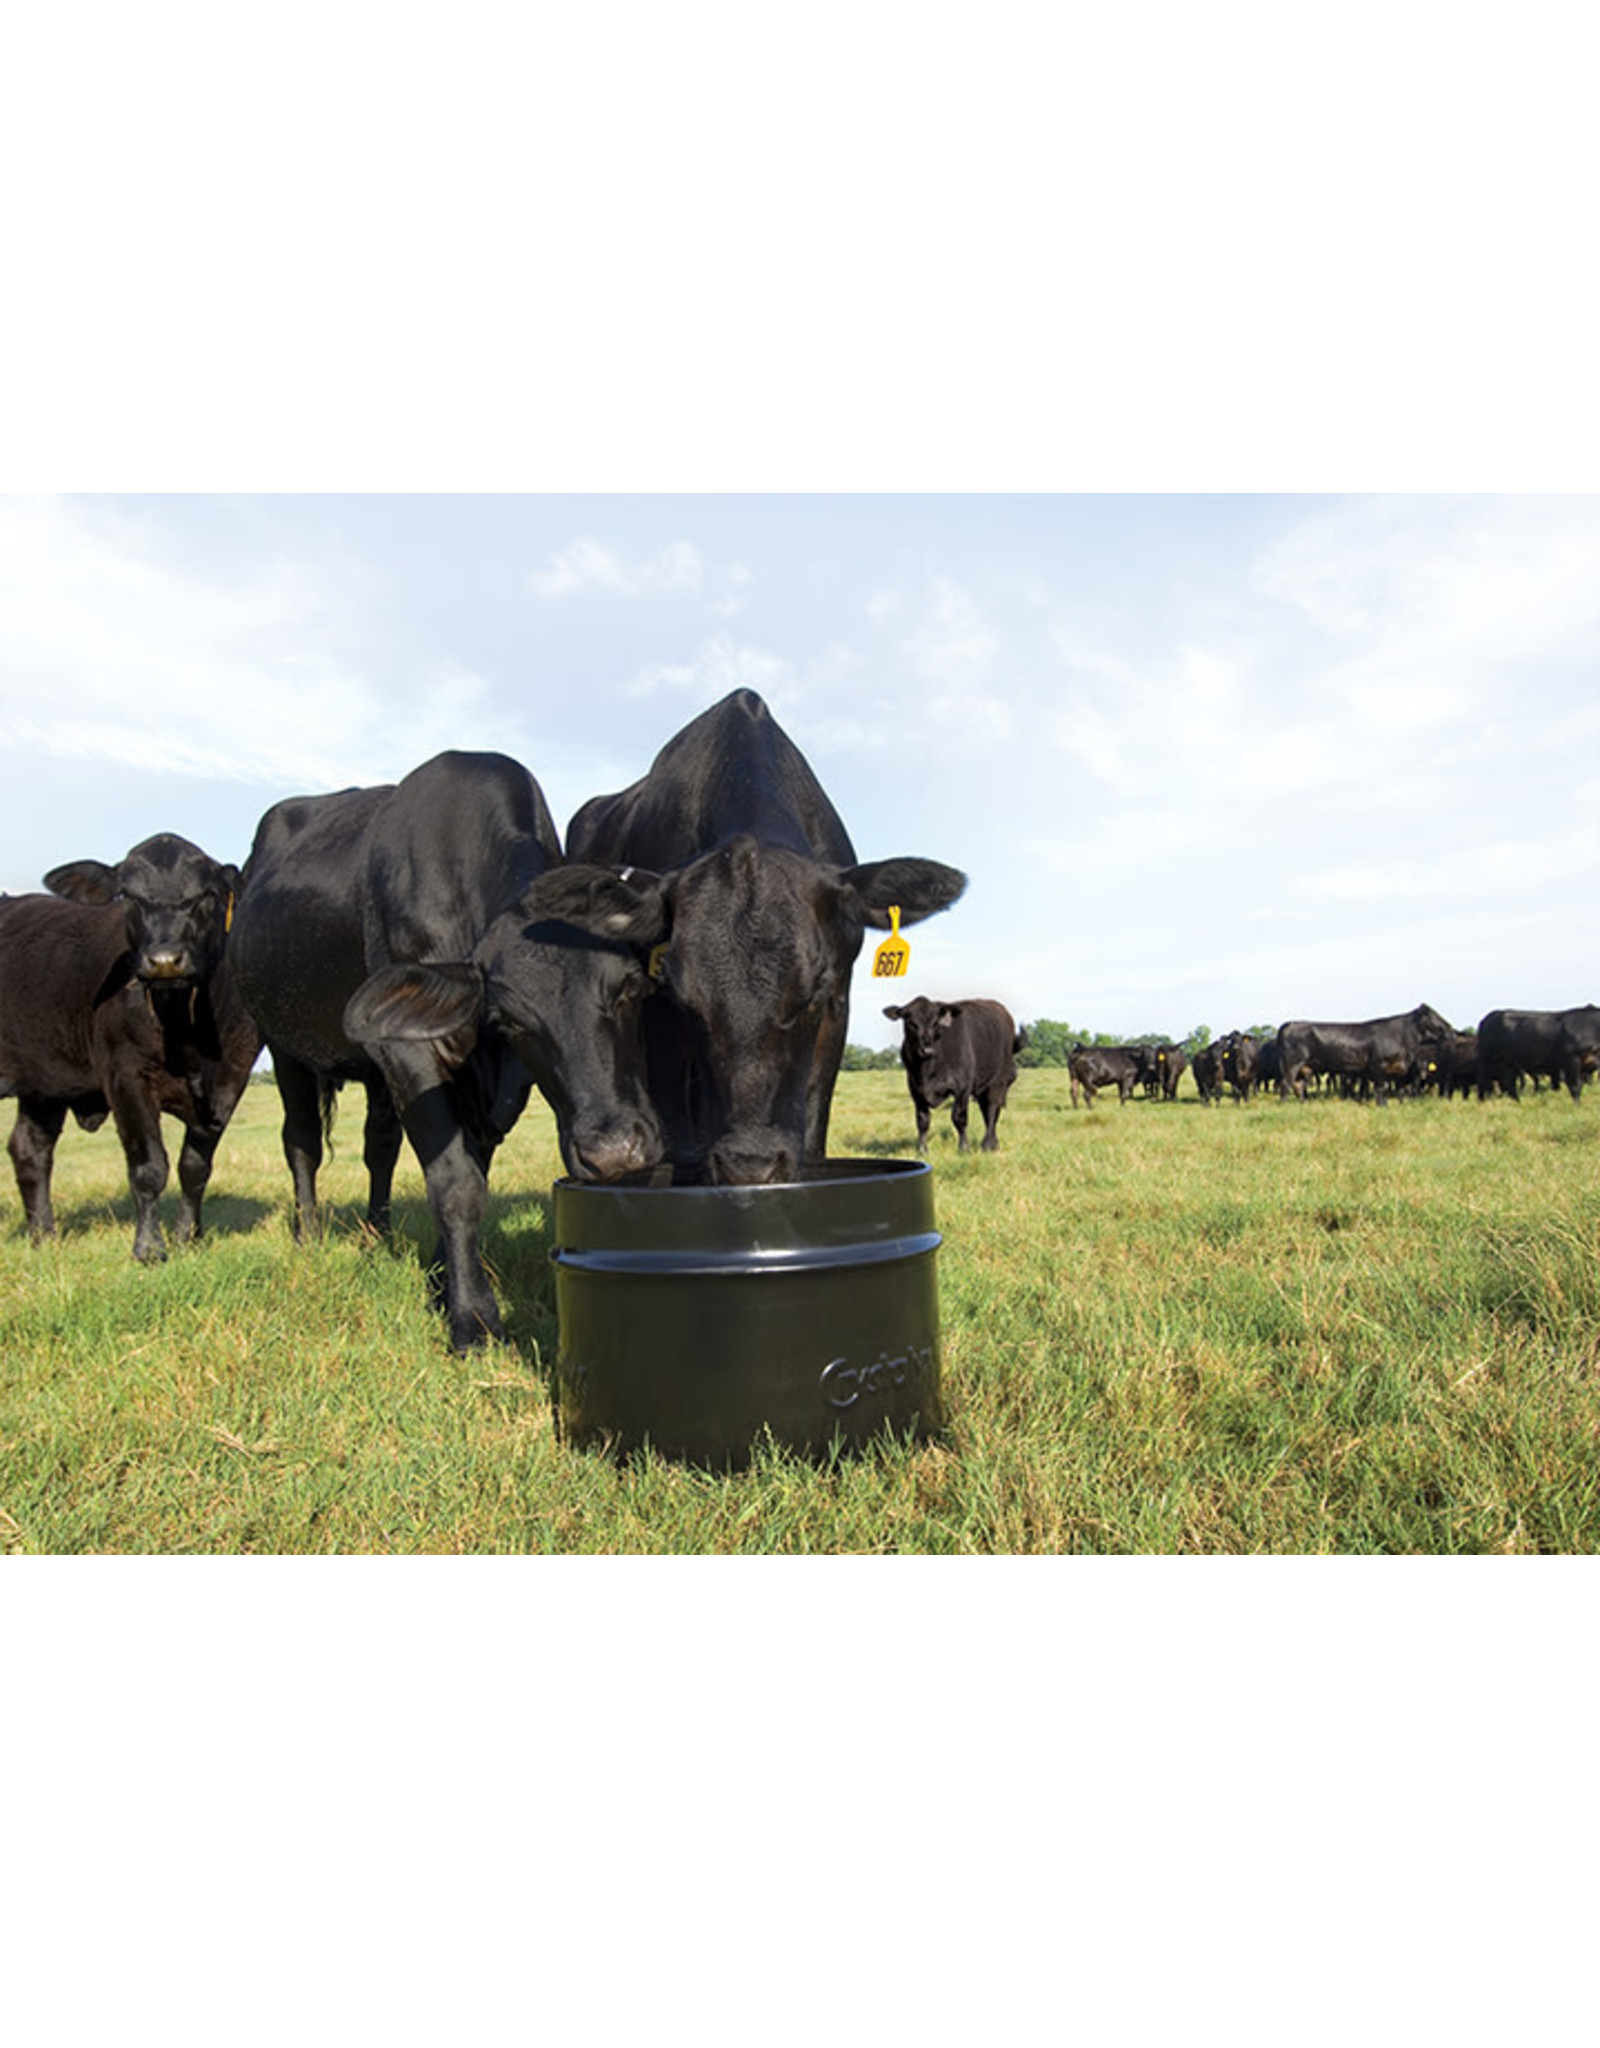 Breed Up 28% Steel 250lbs      Ideal for heifers, cows, and bulls. Use before caving to aid in the final weeks of gestation to help determine the health and performance of her calf & her clean up. Also use before breeding to insure a proper catch.